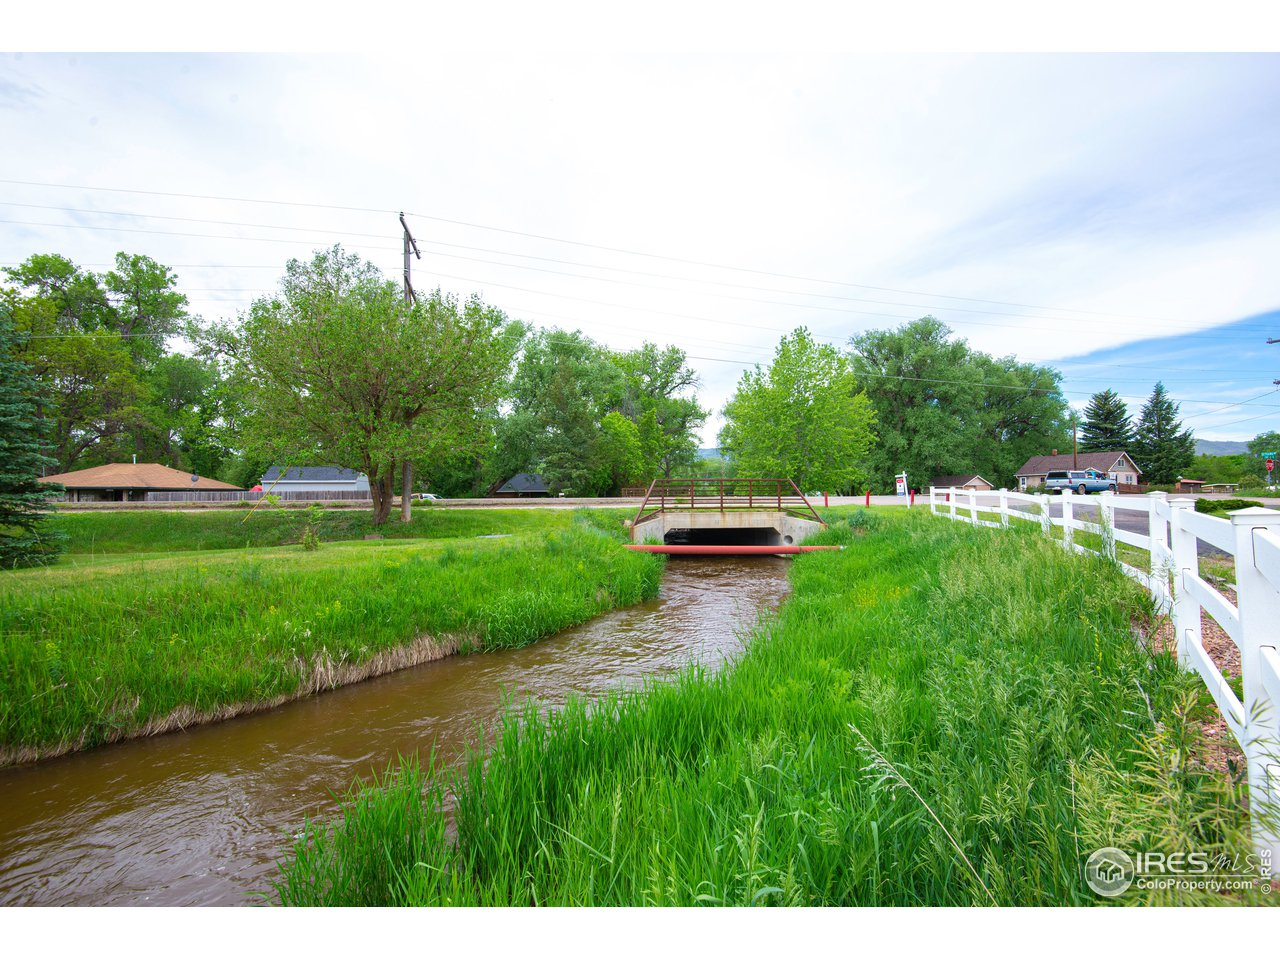 Located across from the Poudre Trail